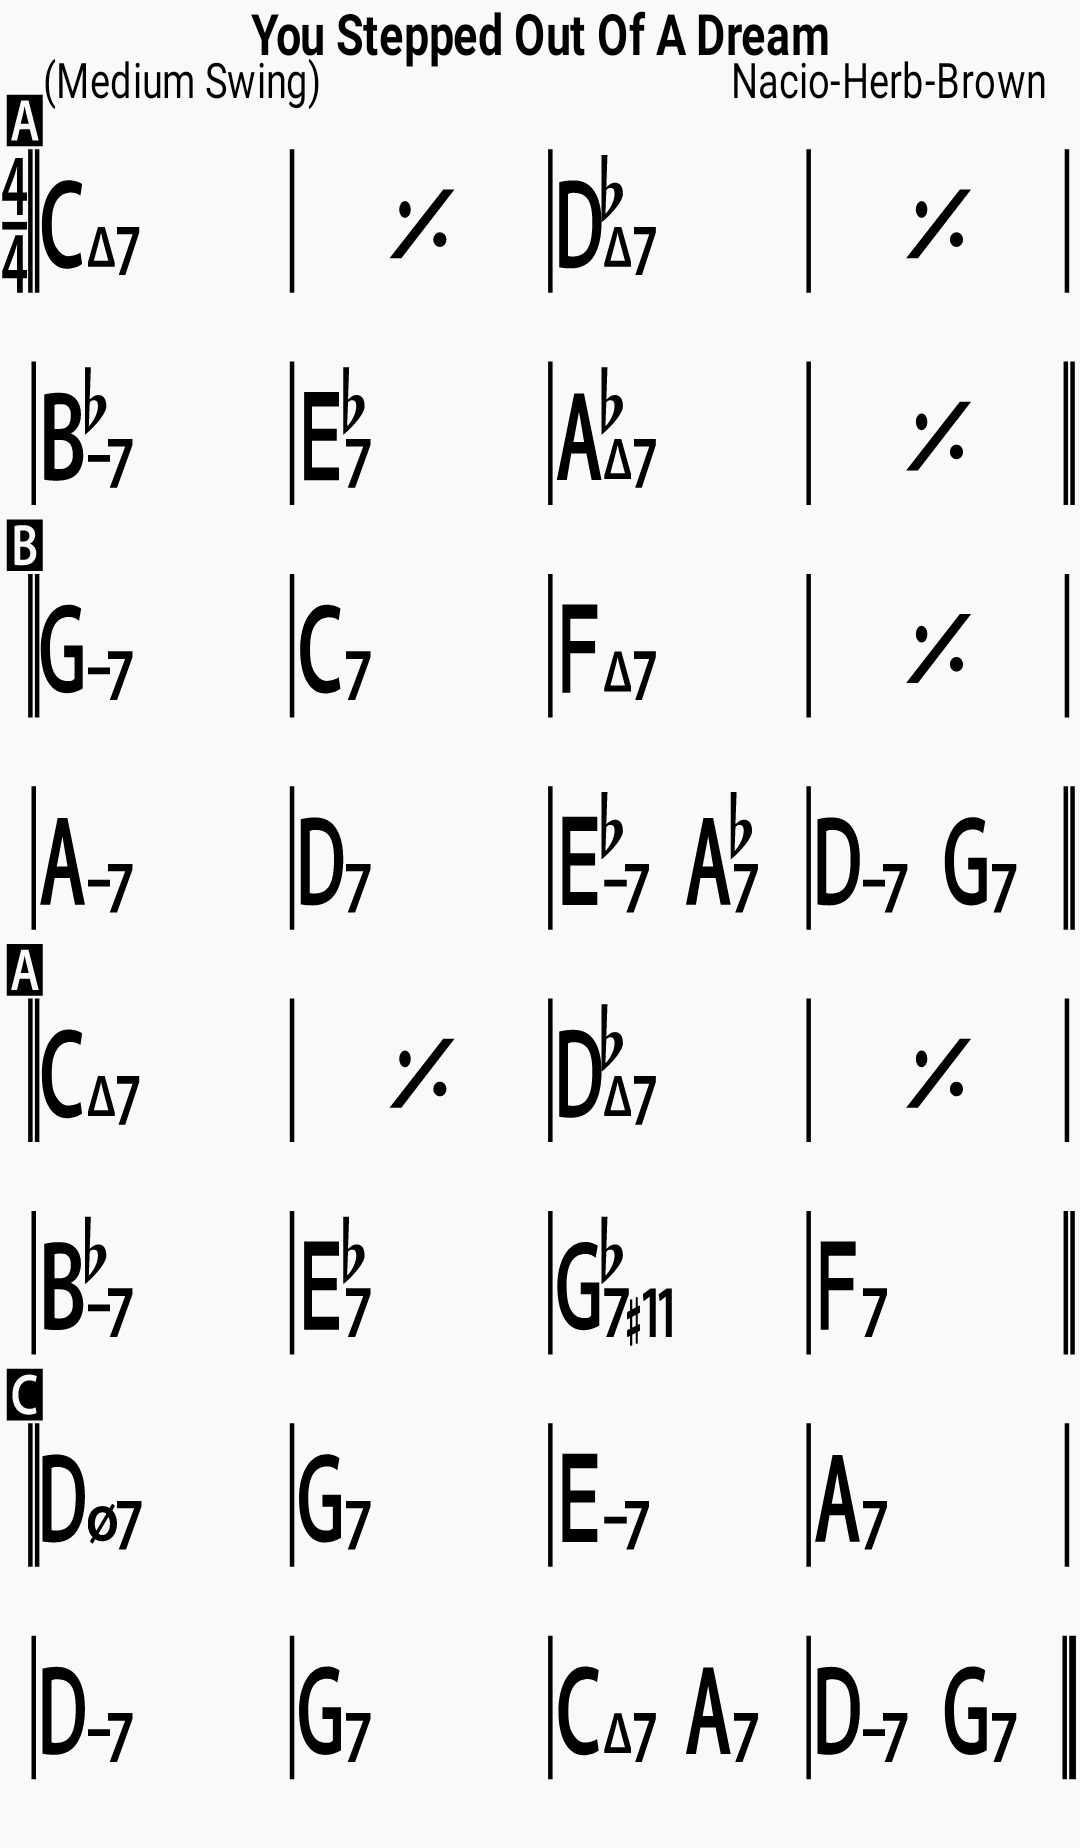 Chord chart for the jazz standard You Stepped Out Of A Dream